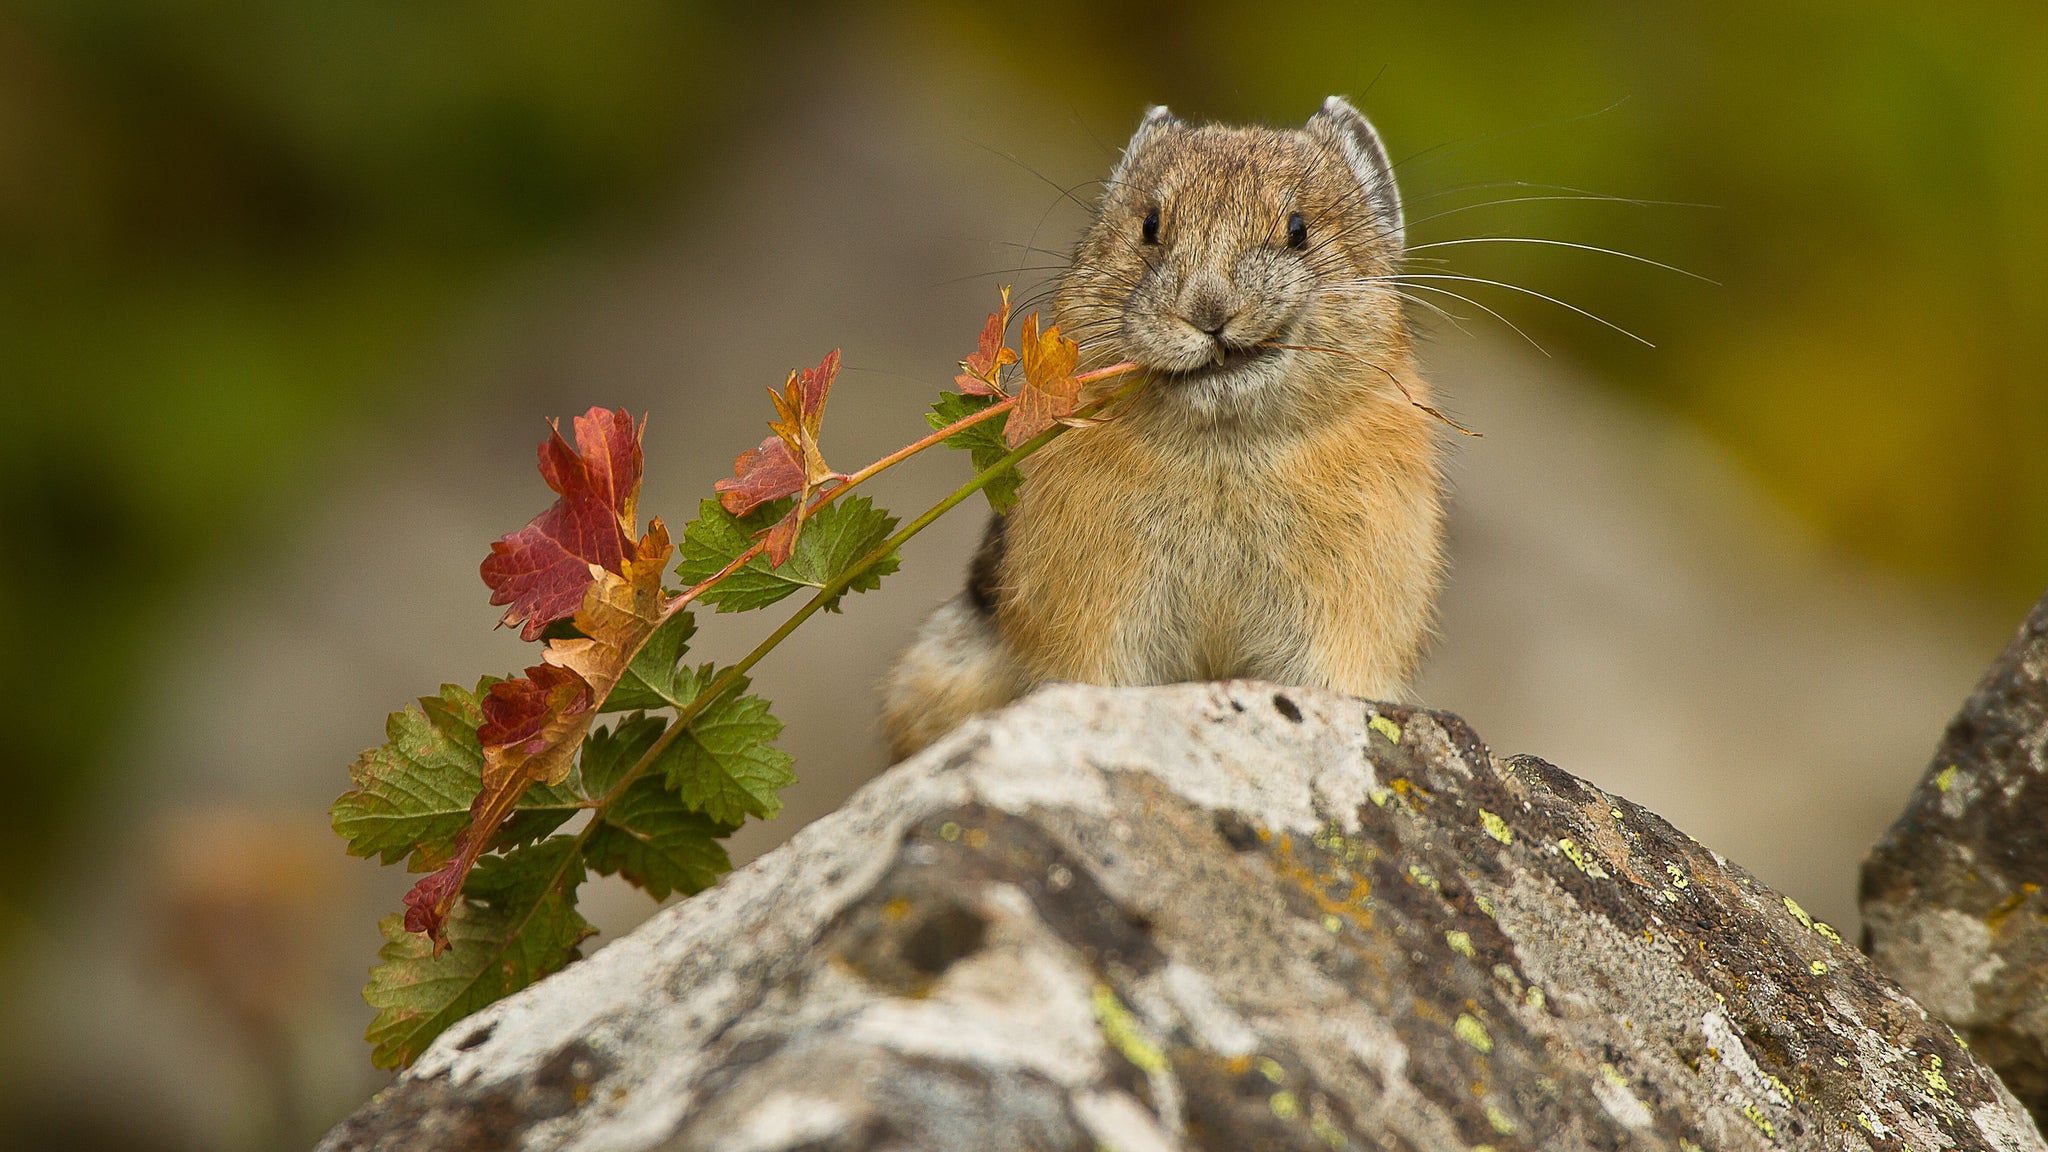 Adorable Animal Subsisting On Wildflowers And Kindness Is In Serious Danger